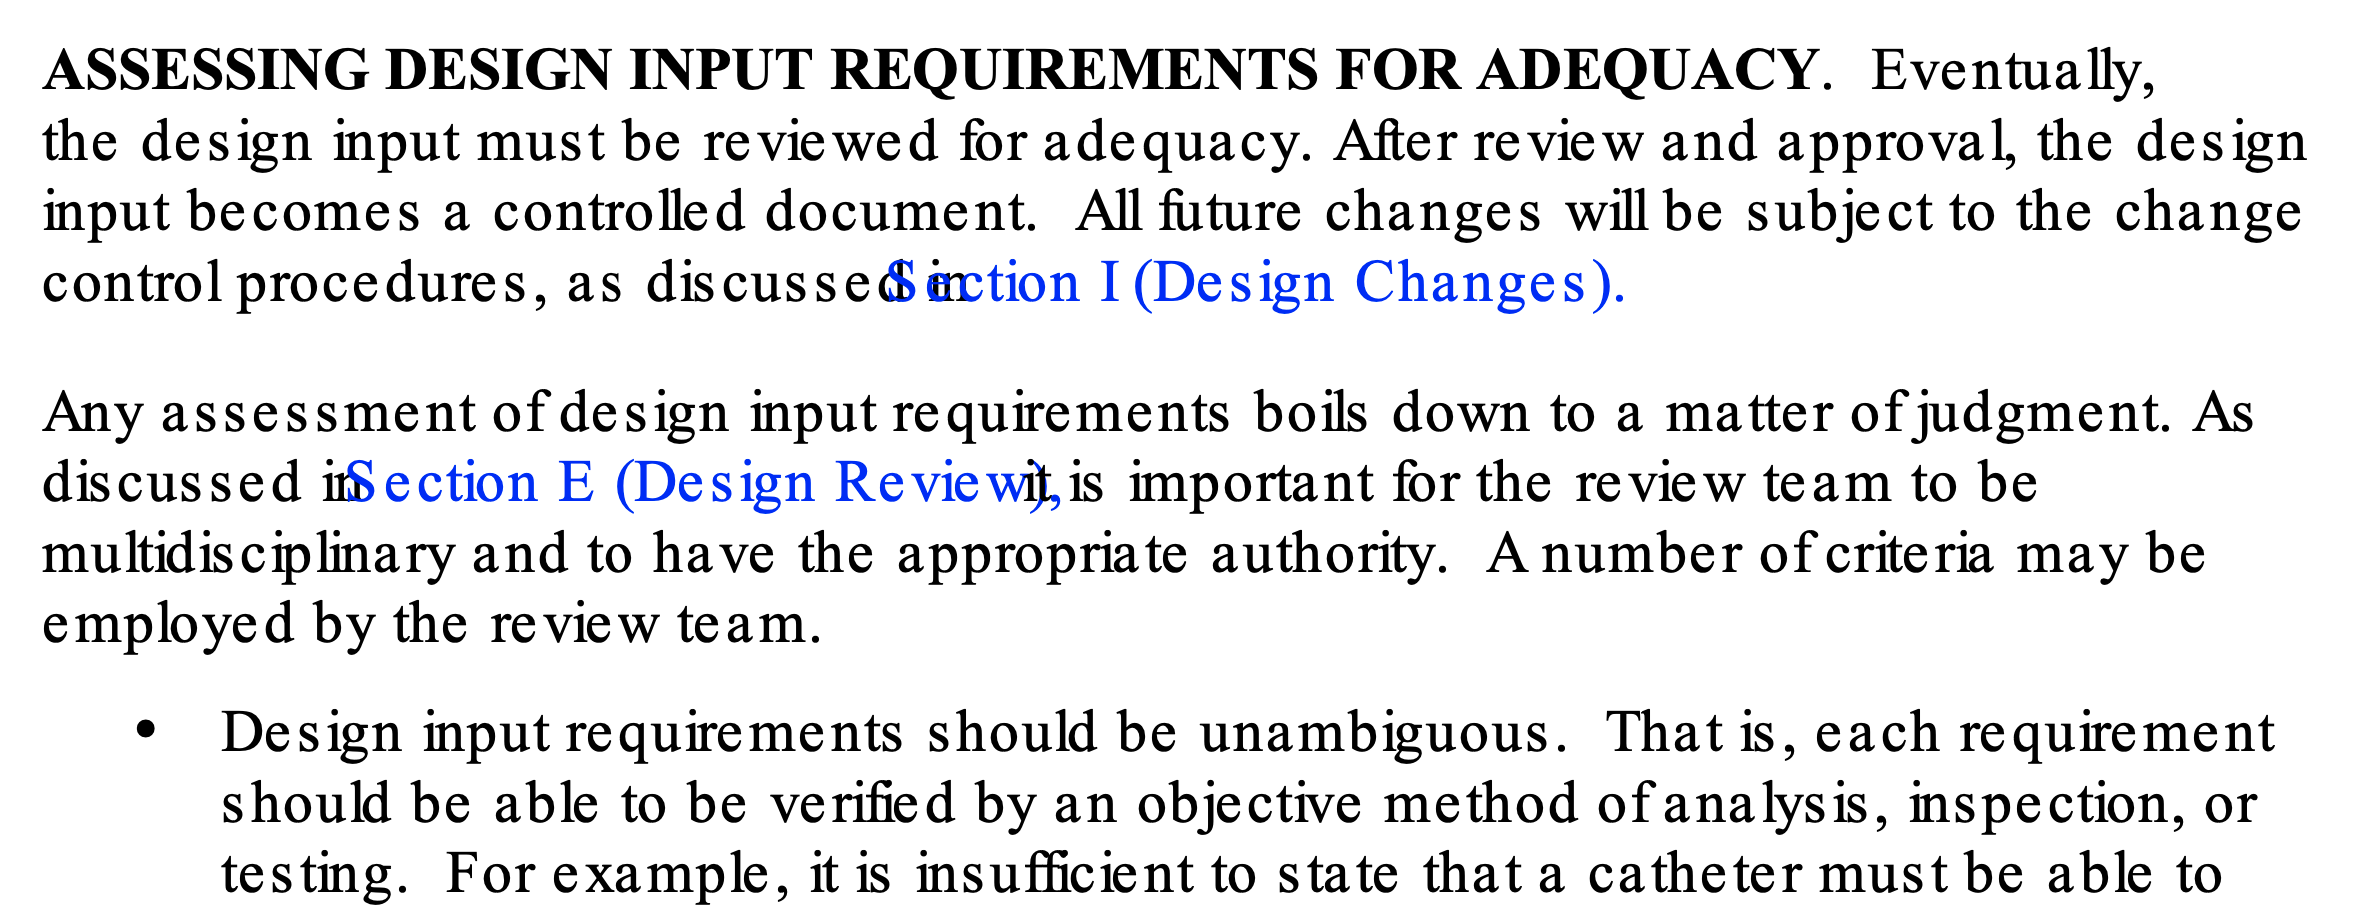 Screenshot showing poor font formatting in the 1997 guidance document PDF.